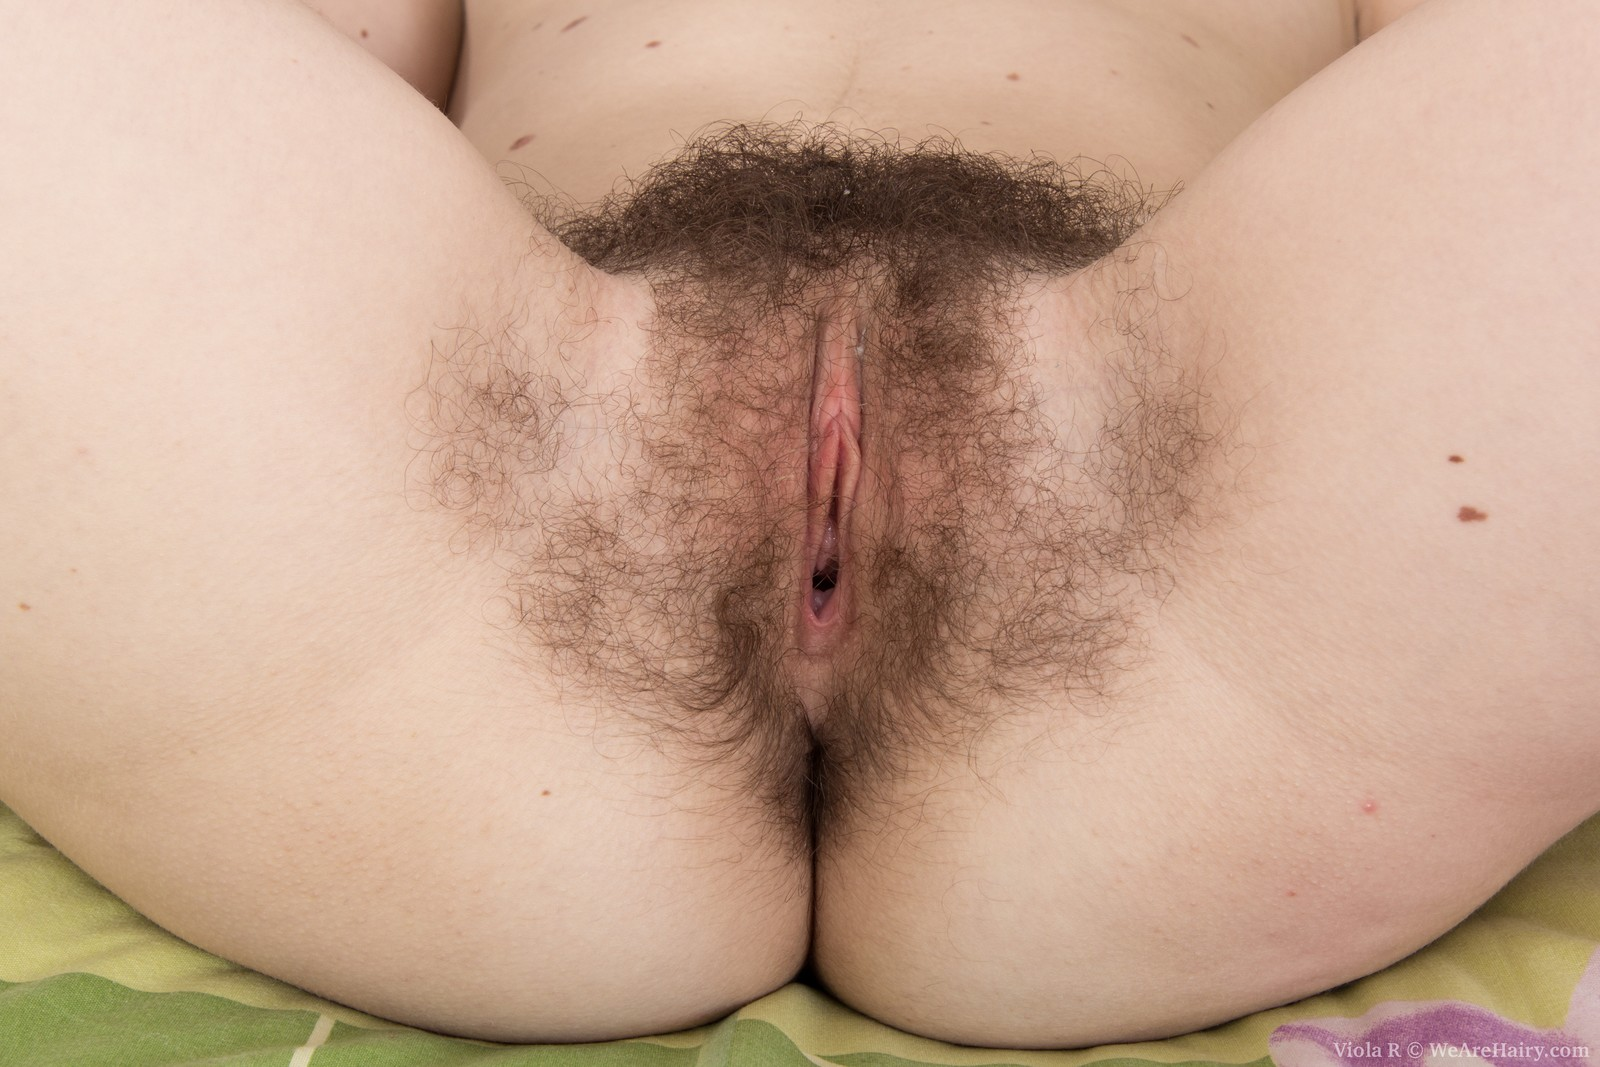 Hairy cunt closeups